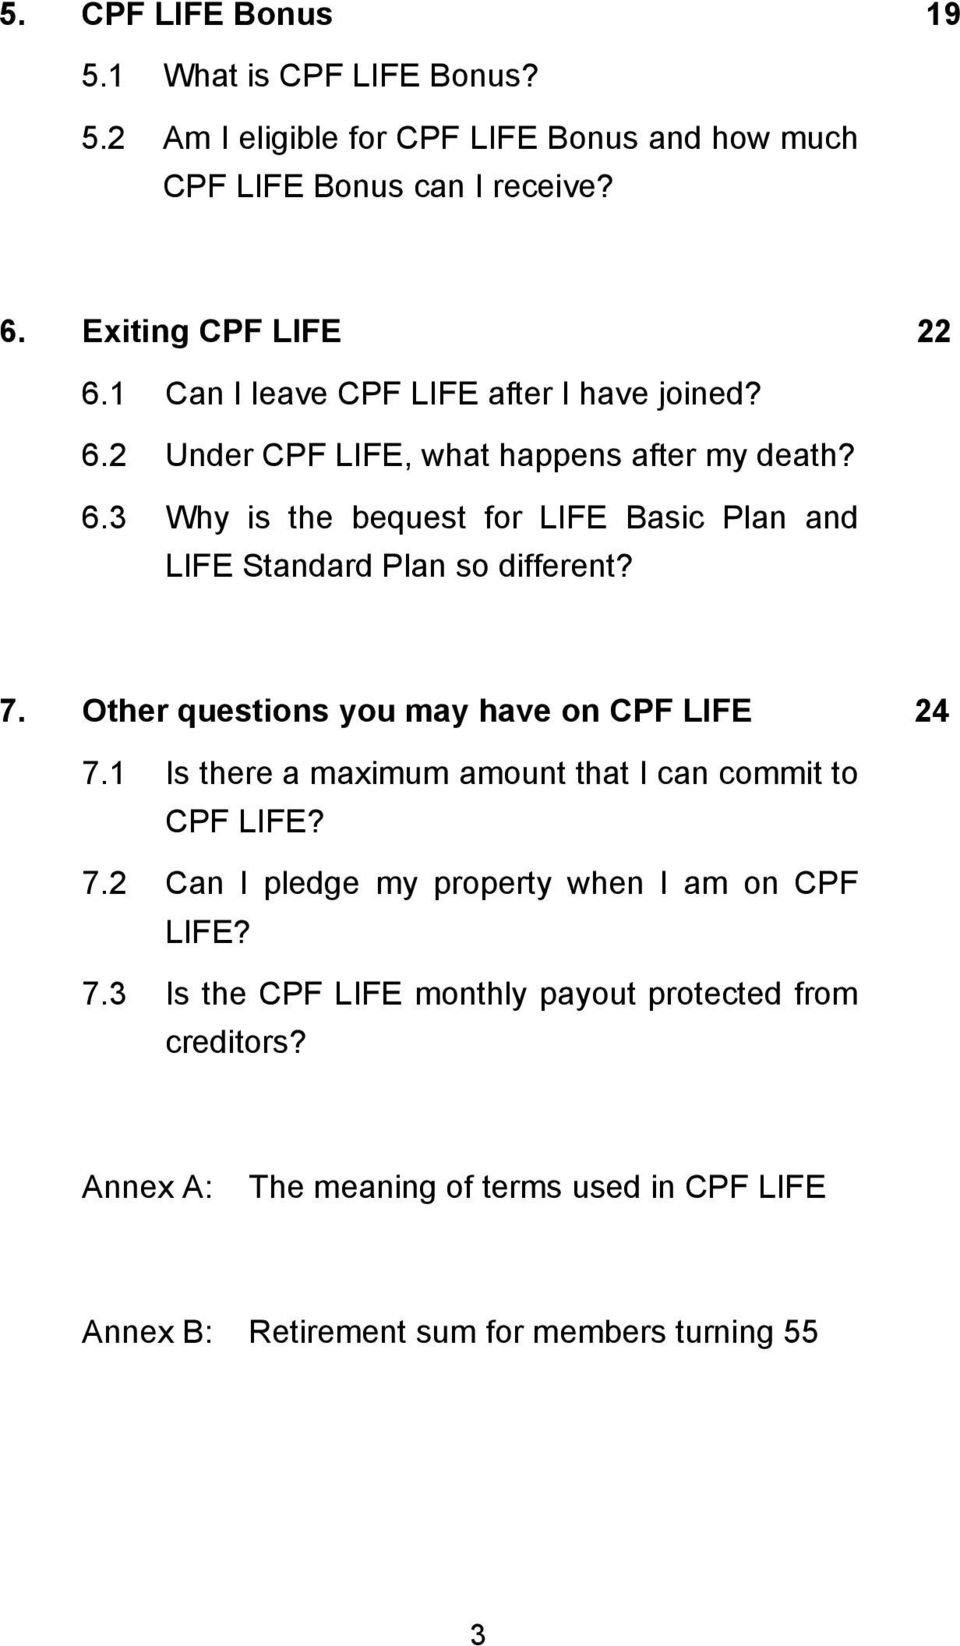 7. Other questions you may have on CPF LIFE 24 7.1 Is there a maximum amount that I can commit to CPF LIFE? 7.2 Can I pledge my property when I am on CPF LIFE?